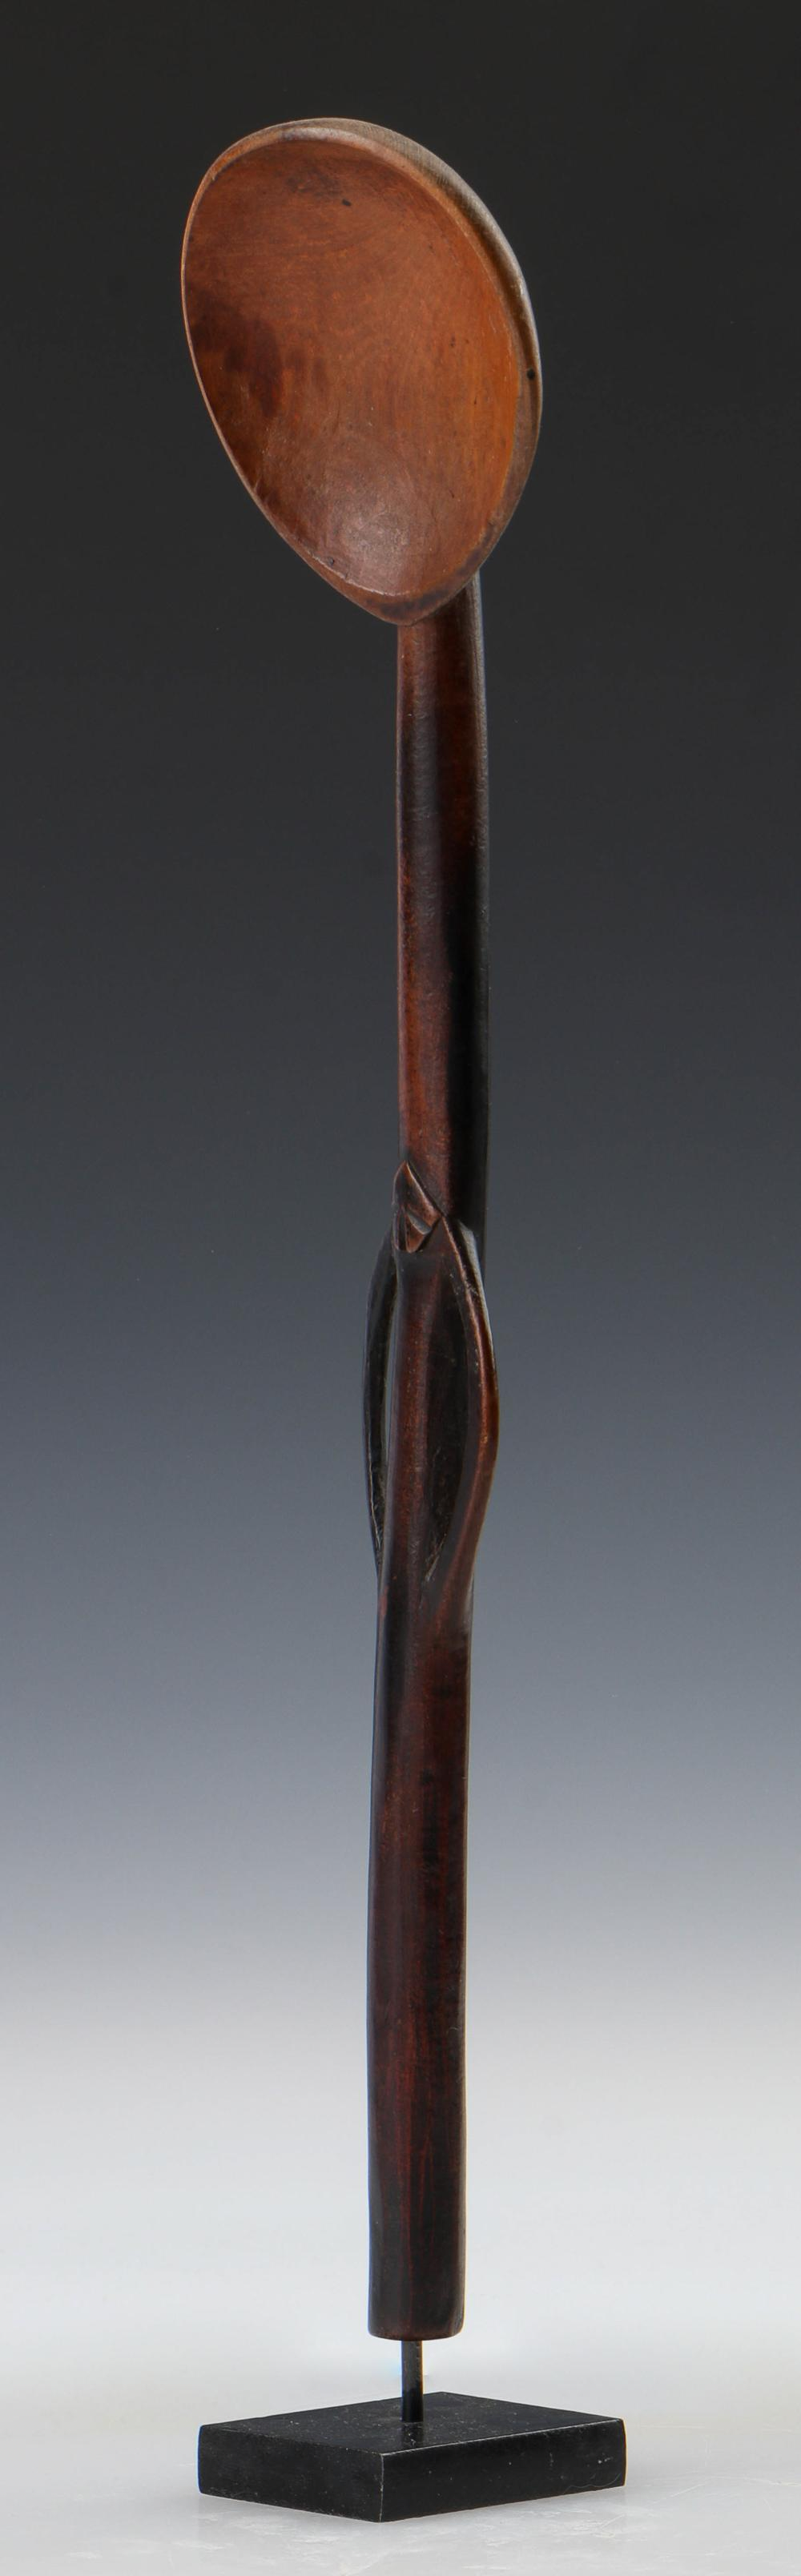 Large African Zulu Spoon with Figure, Early 20th C.